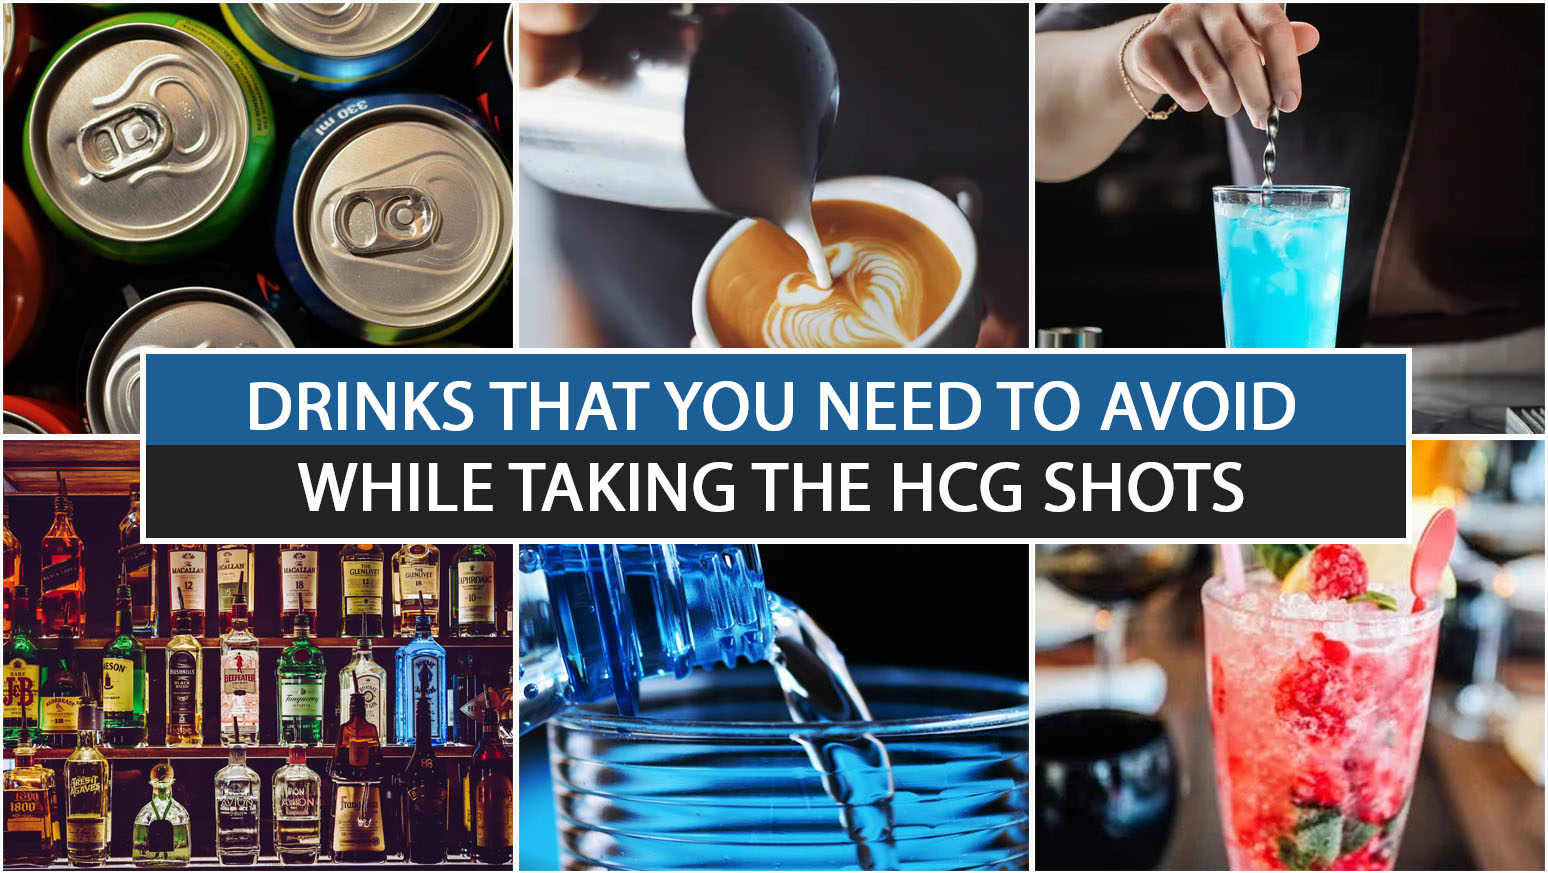 DRINKS THAT YOU NEED TO AVOID WHILE TAKING THE HCG SHOTS